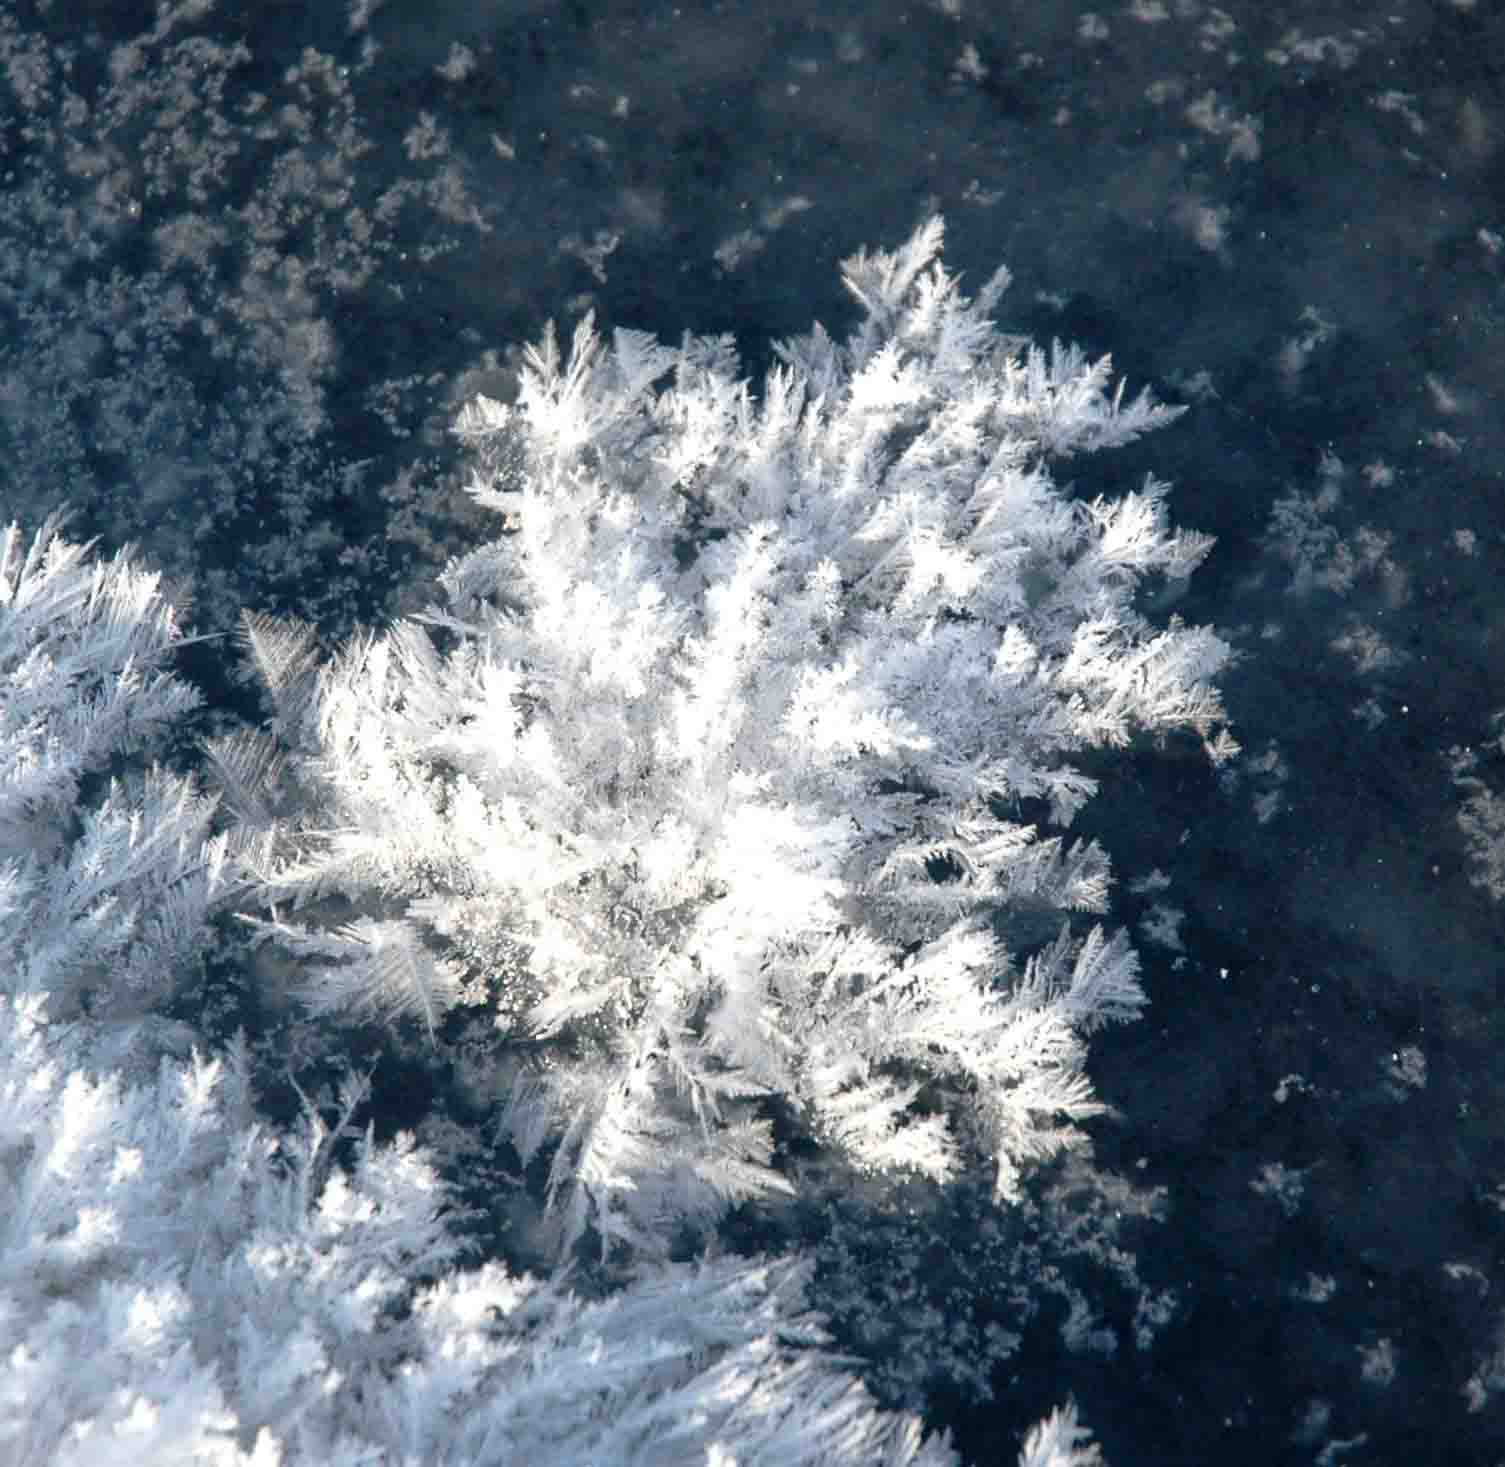 Claim Arctic sea ice helps remove CO2 from the atmosphere